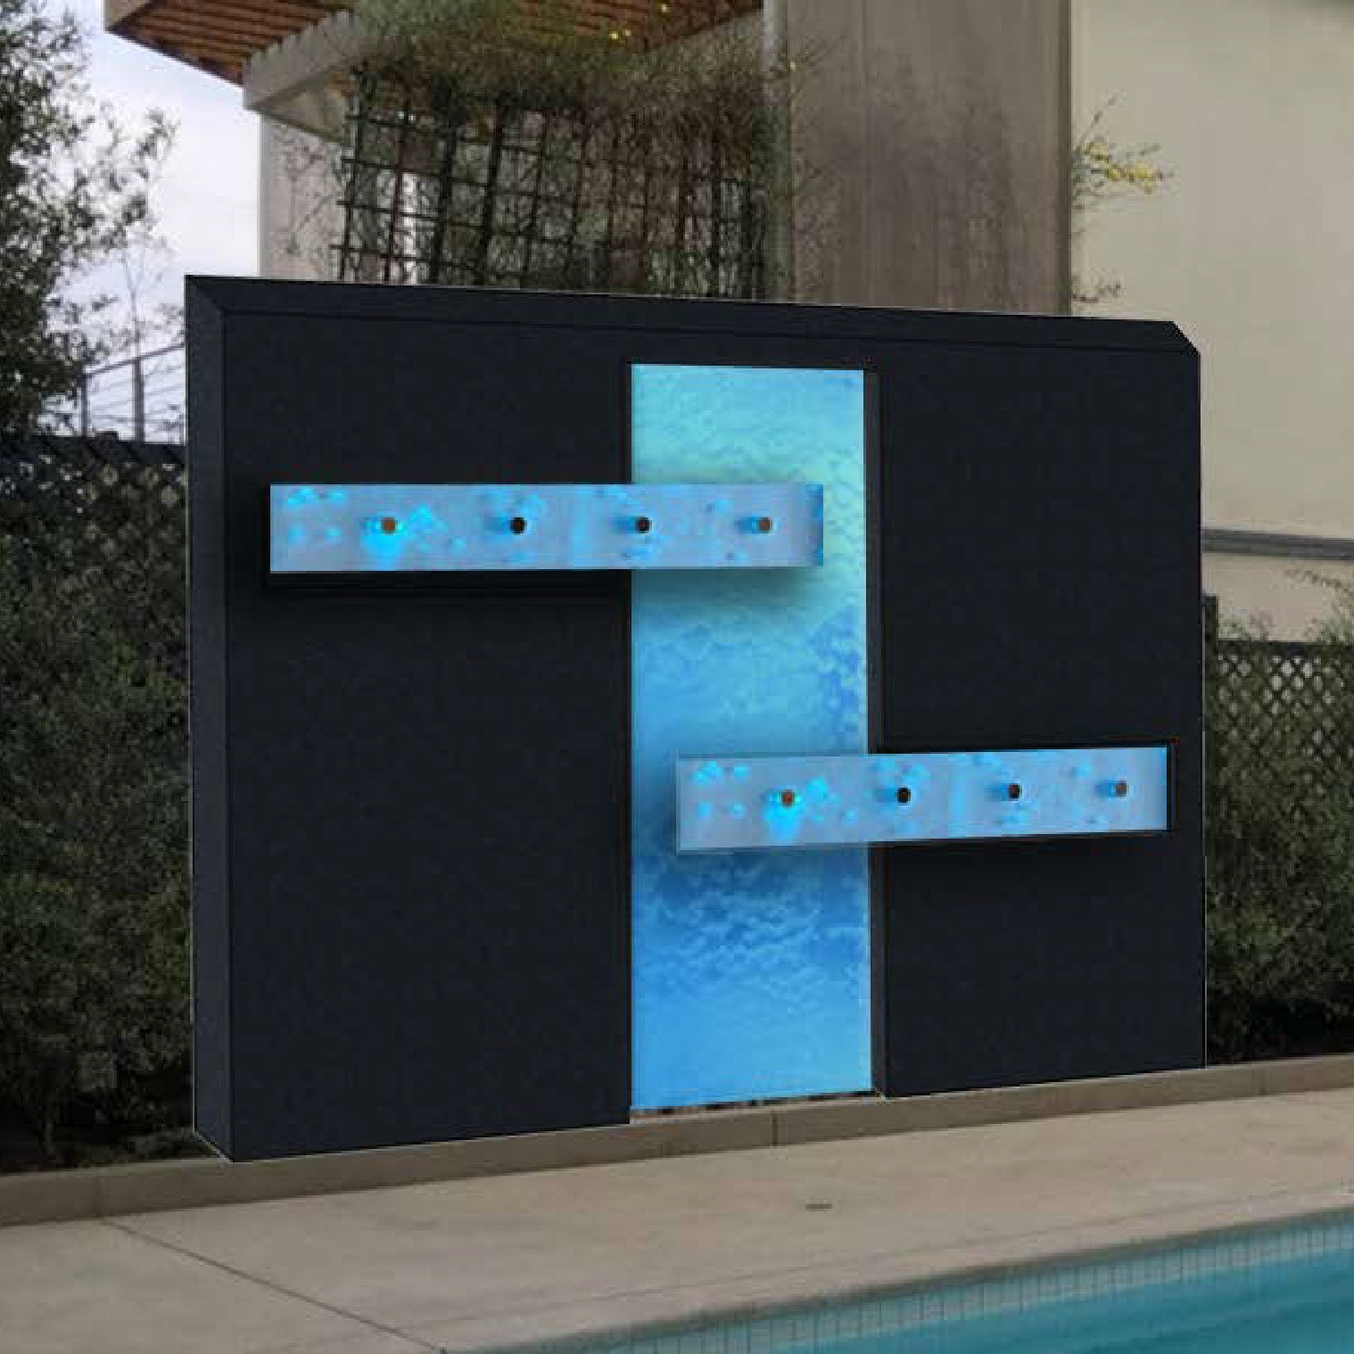 concept-pool-water-feature-2.jpg